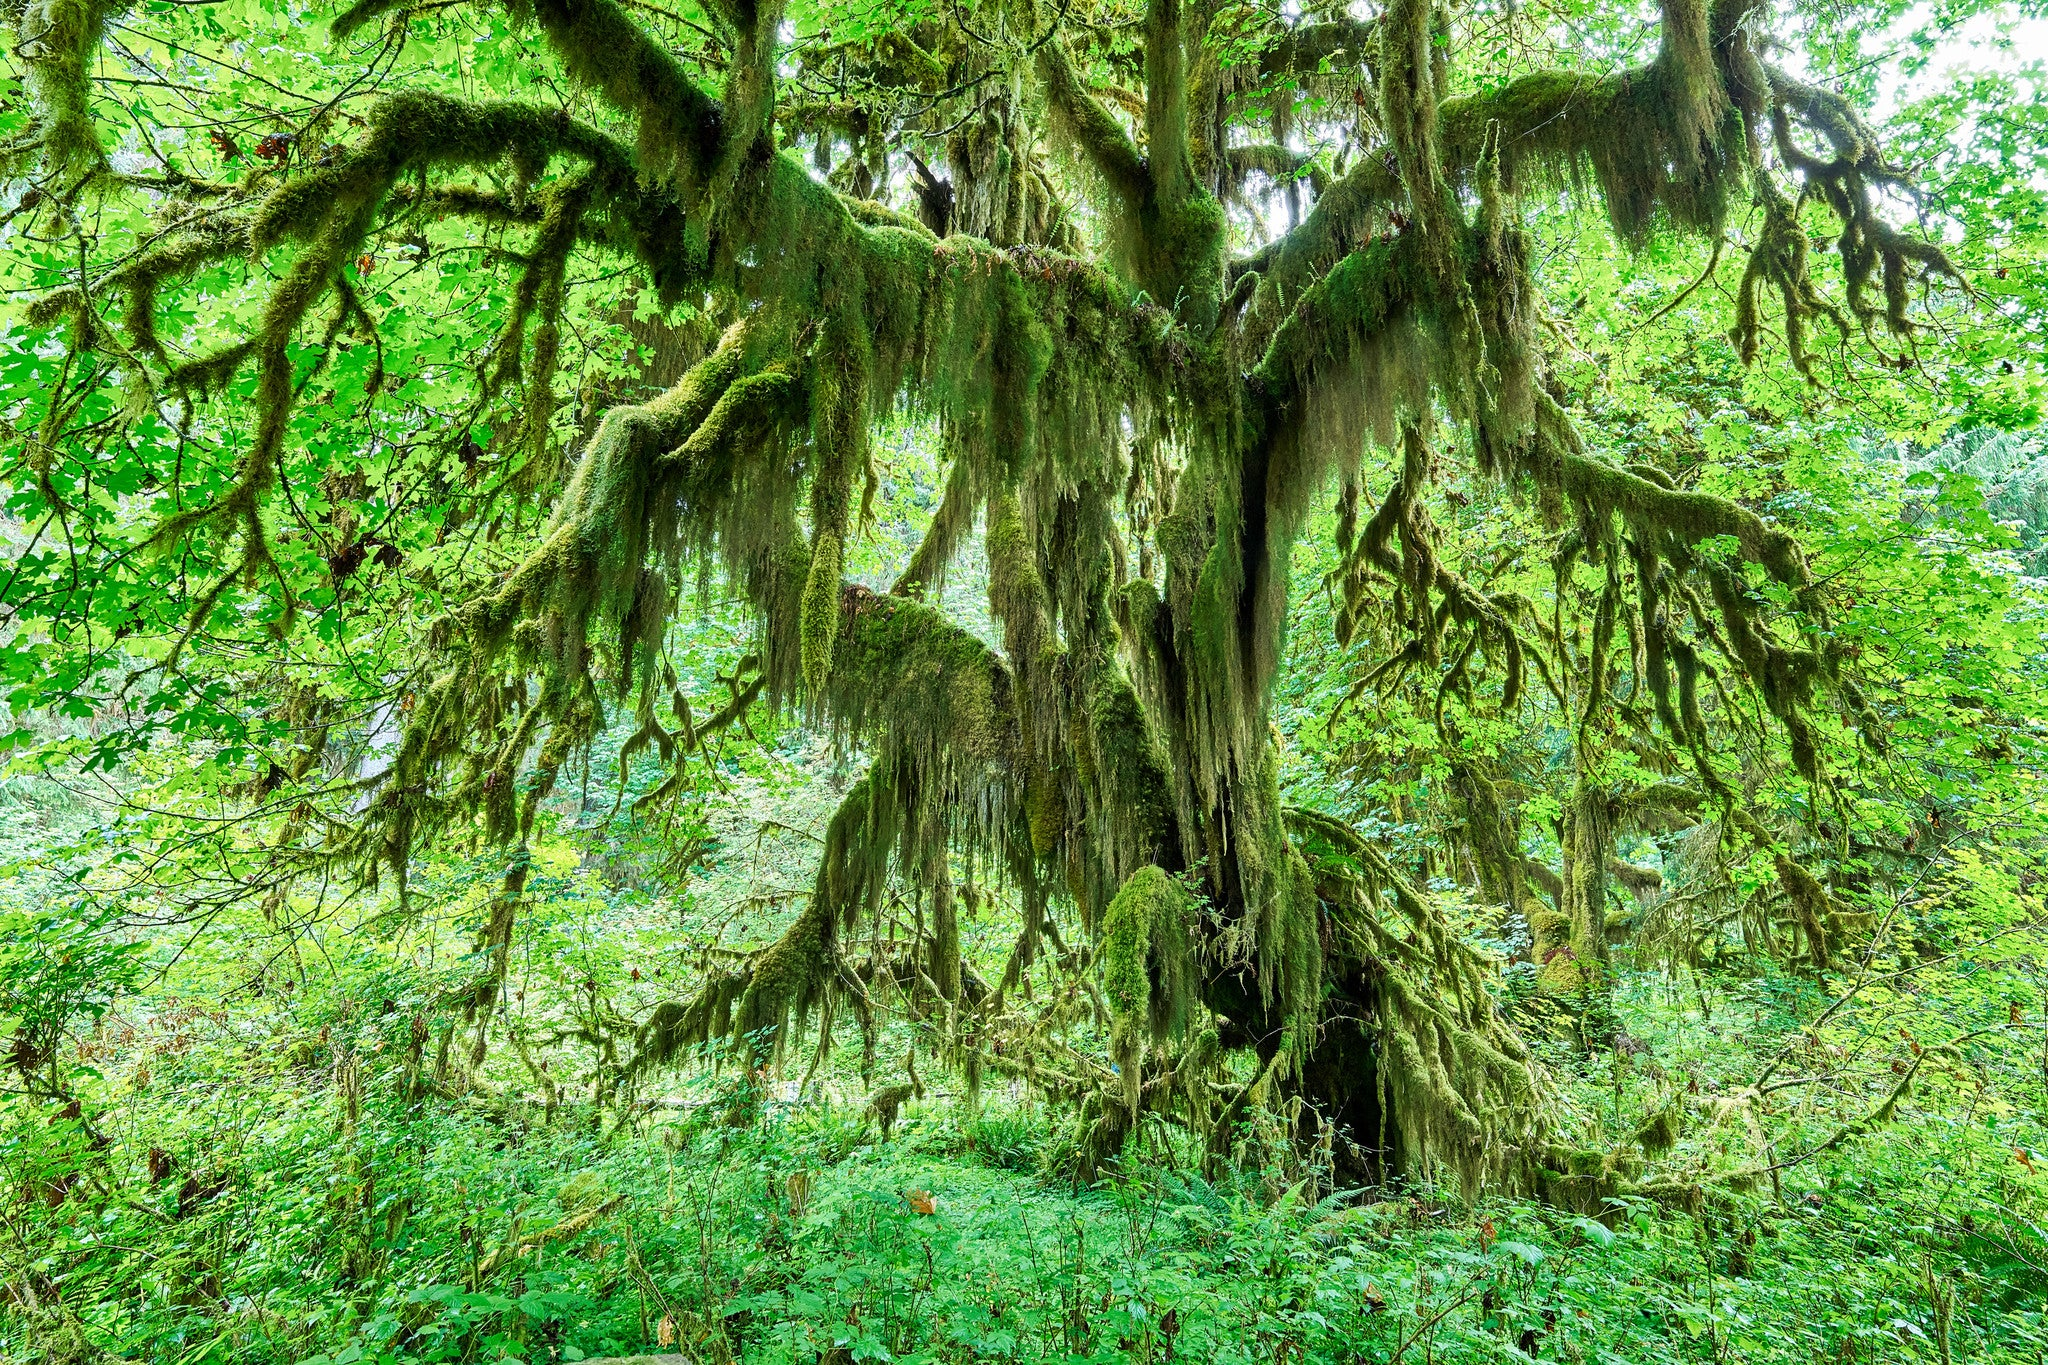 Grandfather Moss Tree - Hoh Rain Forest